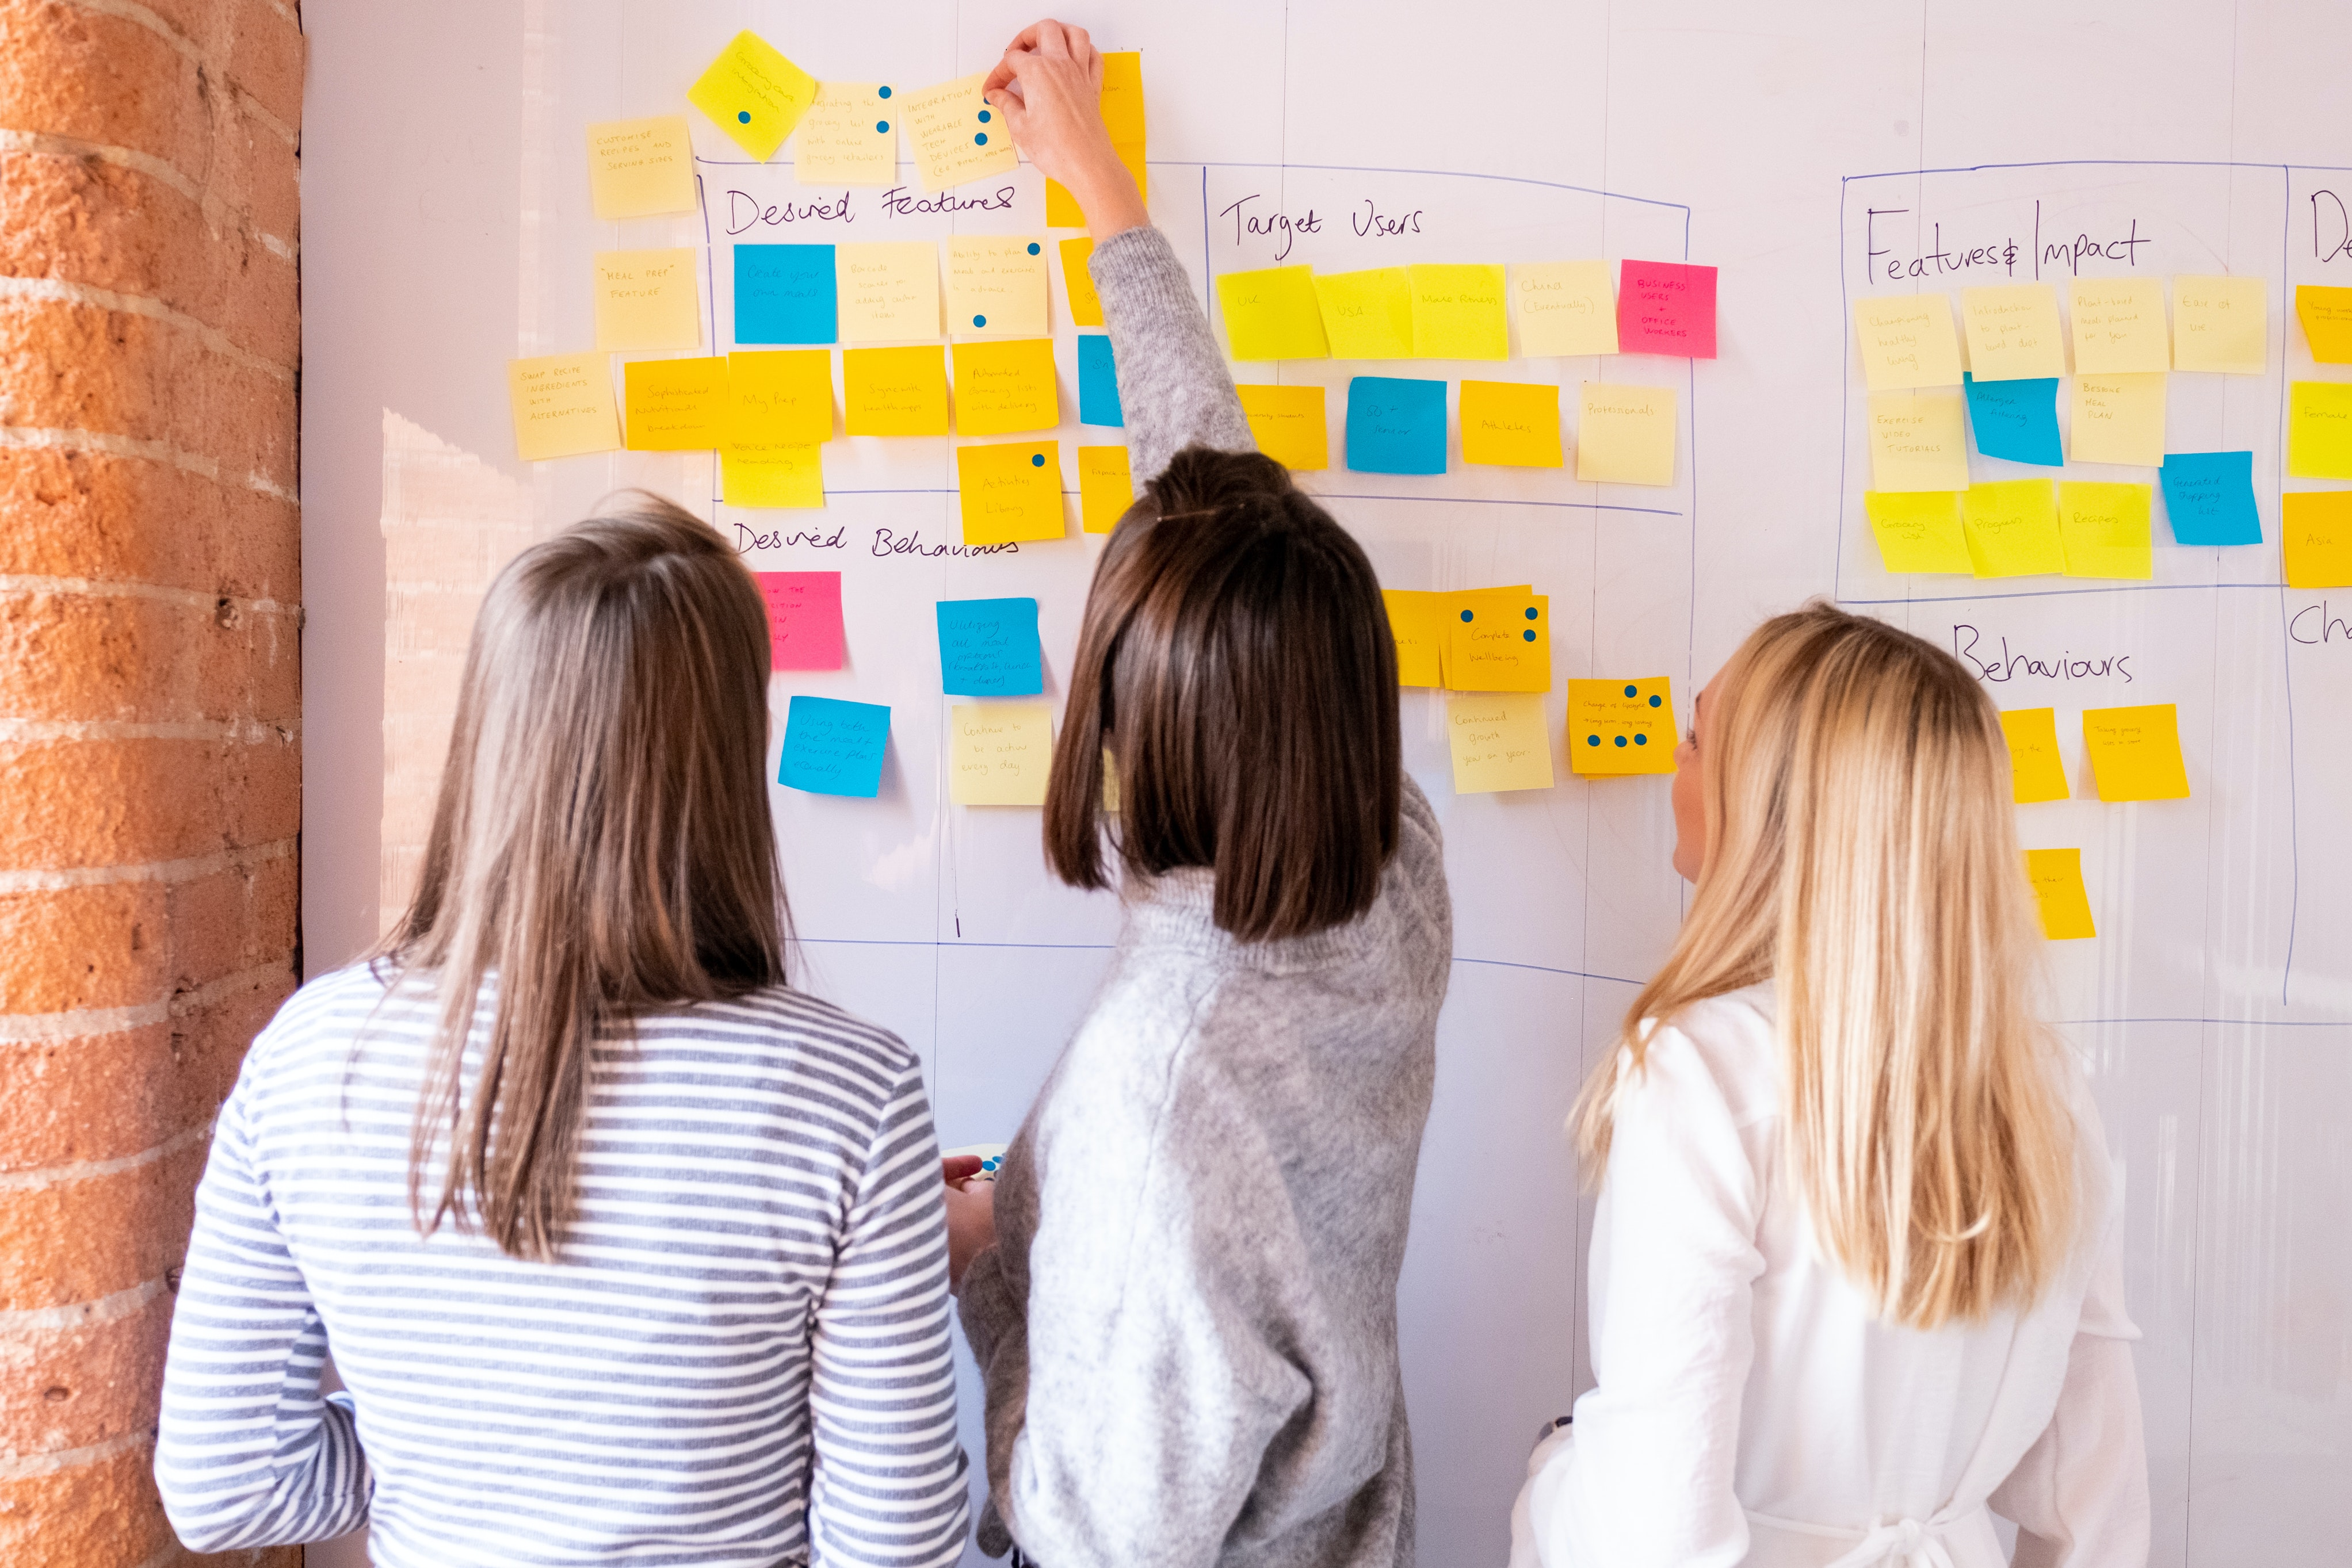 The value of user-centric digital product design